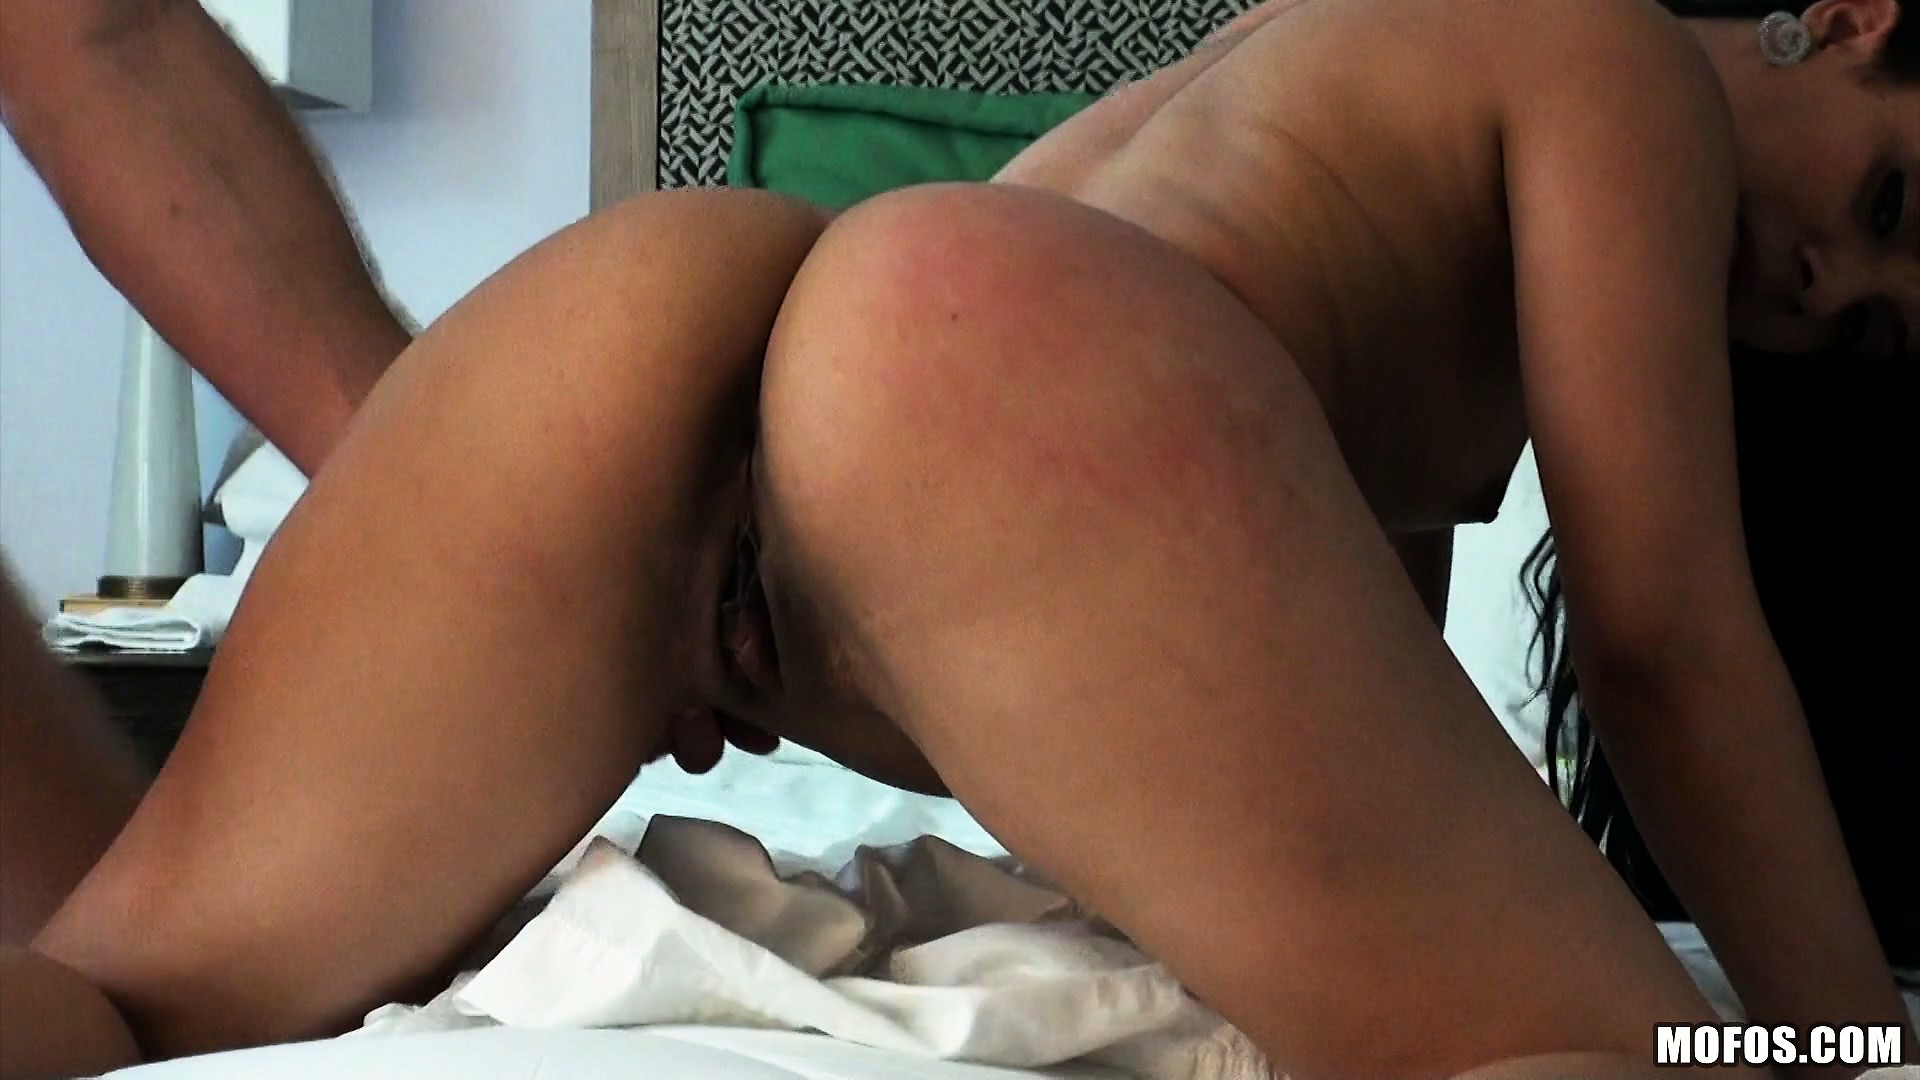 Porno Video of Then She Sticks Her Ass Up And He Starts Banging Her Doggy Style